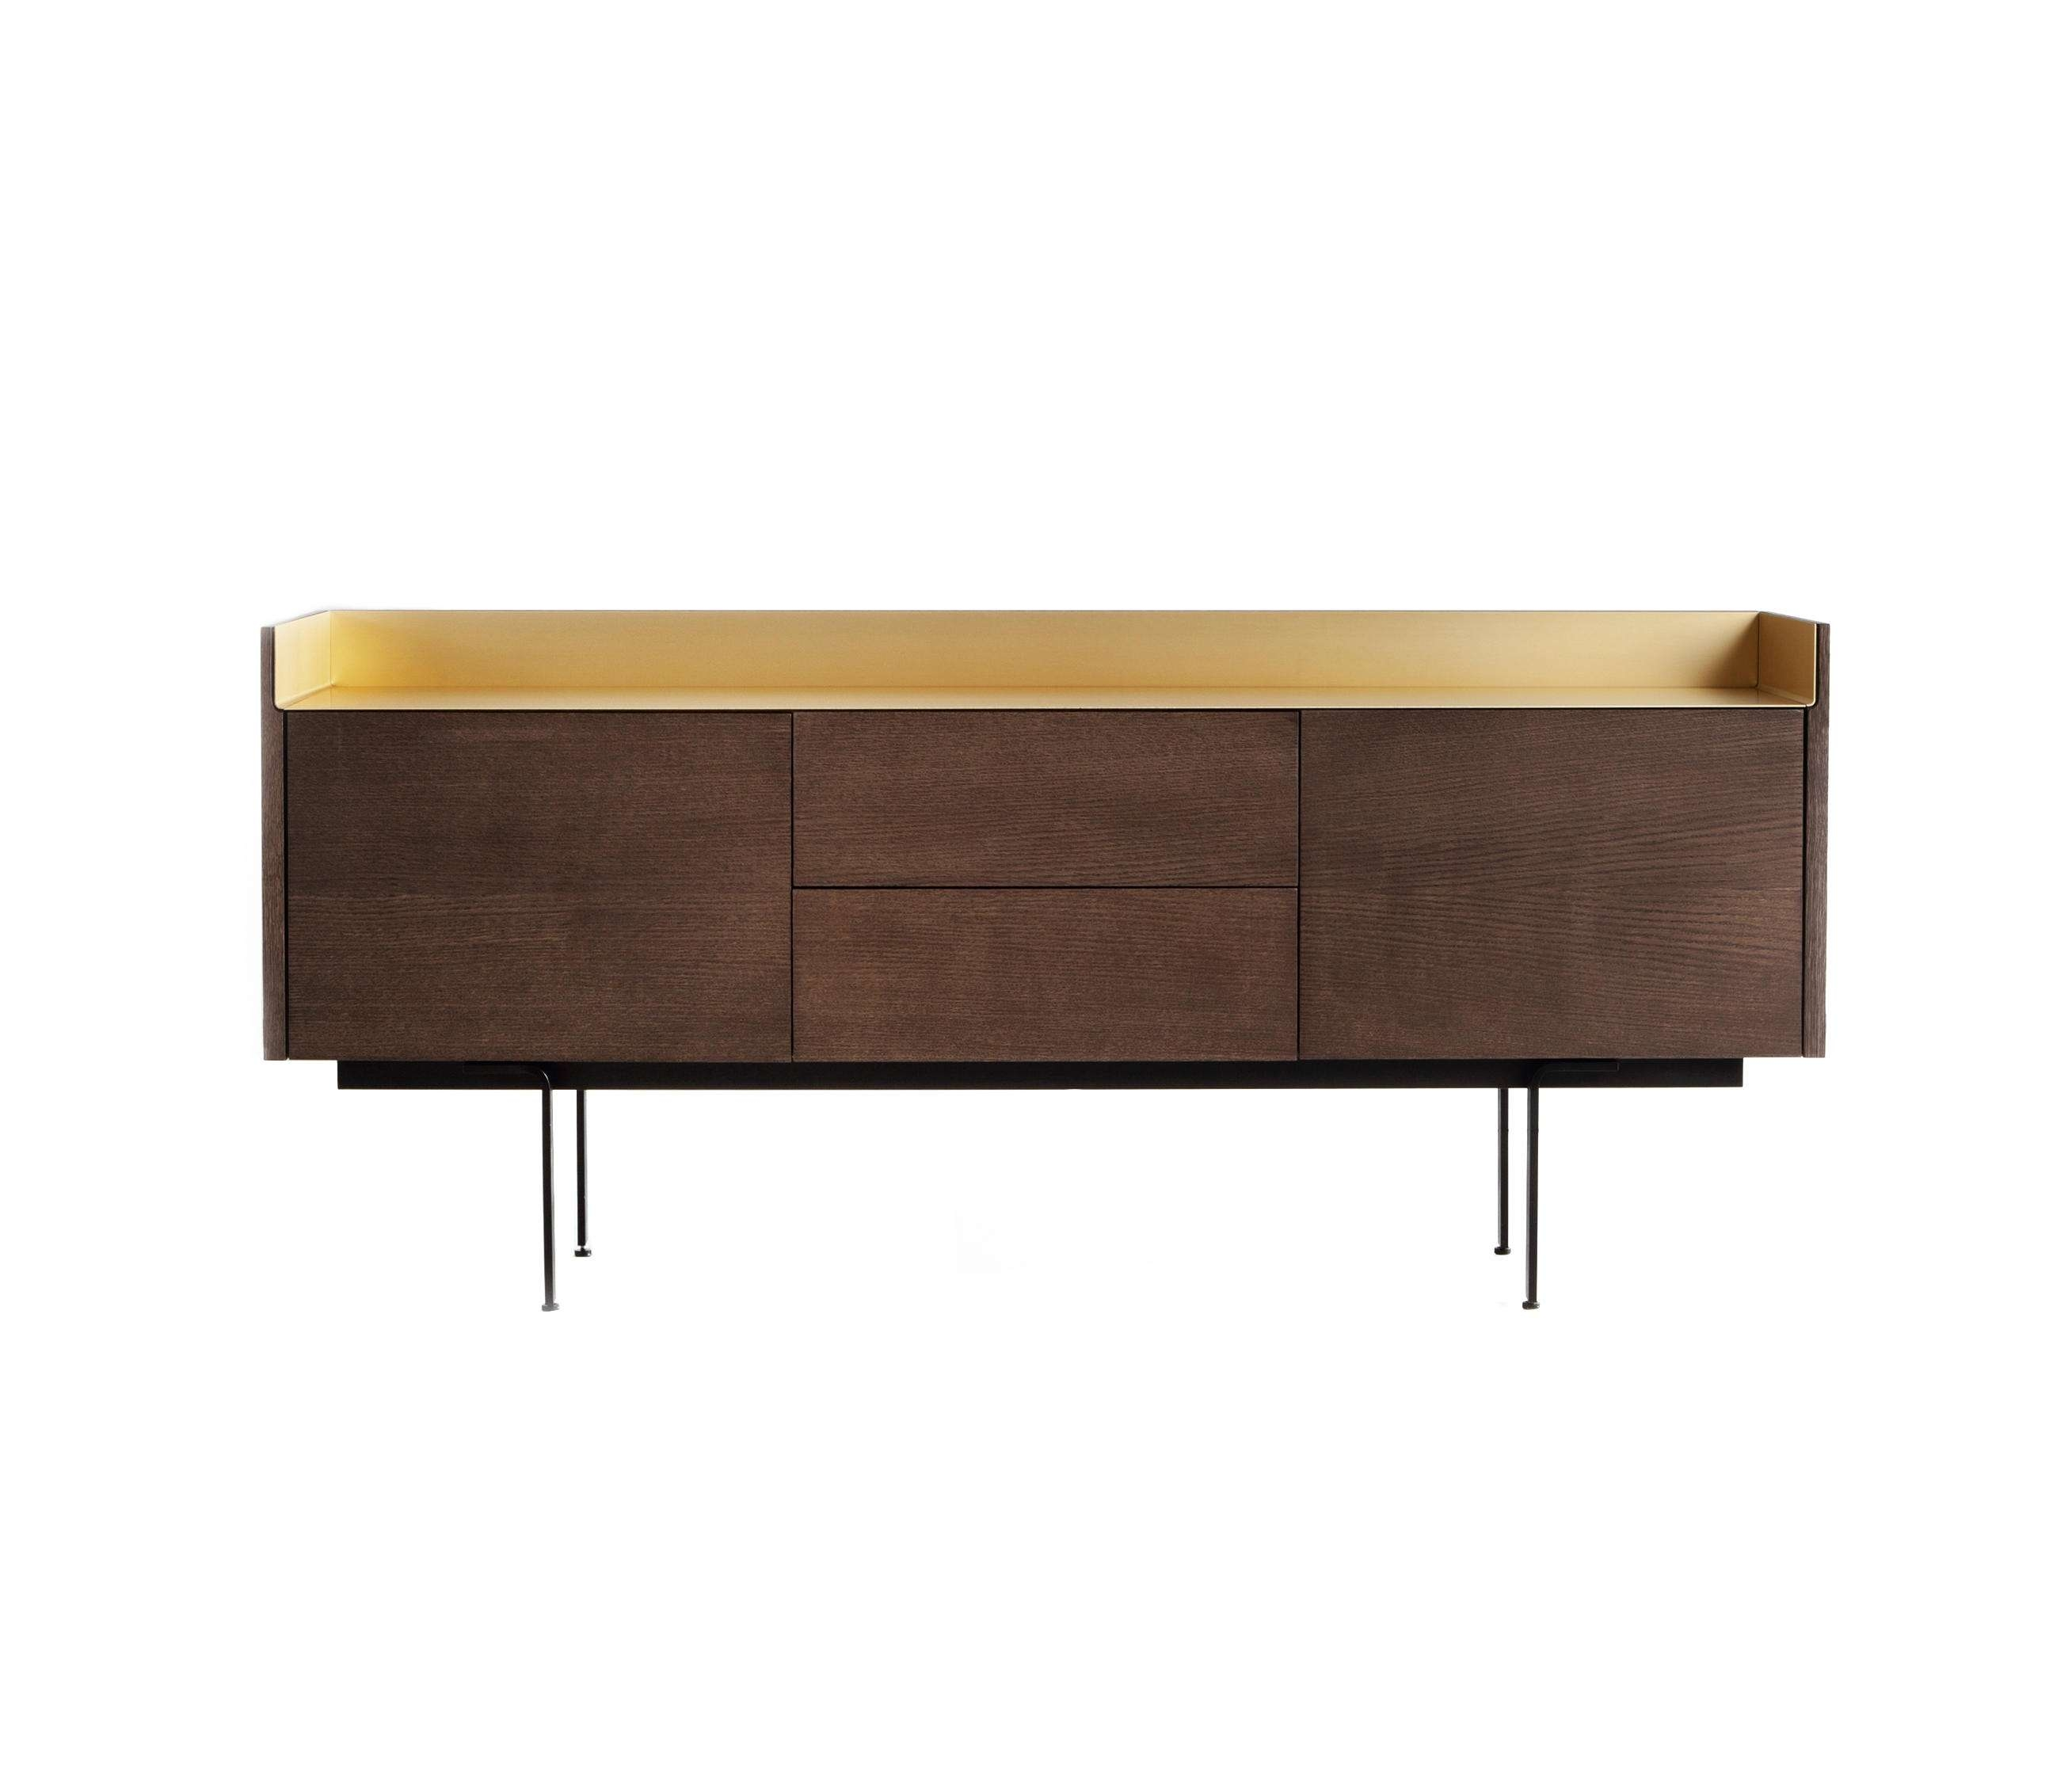 Stockholm – Sideboards From Punt Mobles | Architonic Inside Stockholm Sideboards (View 12 of 20)